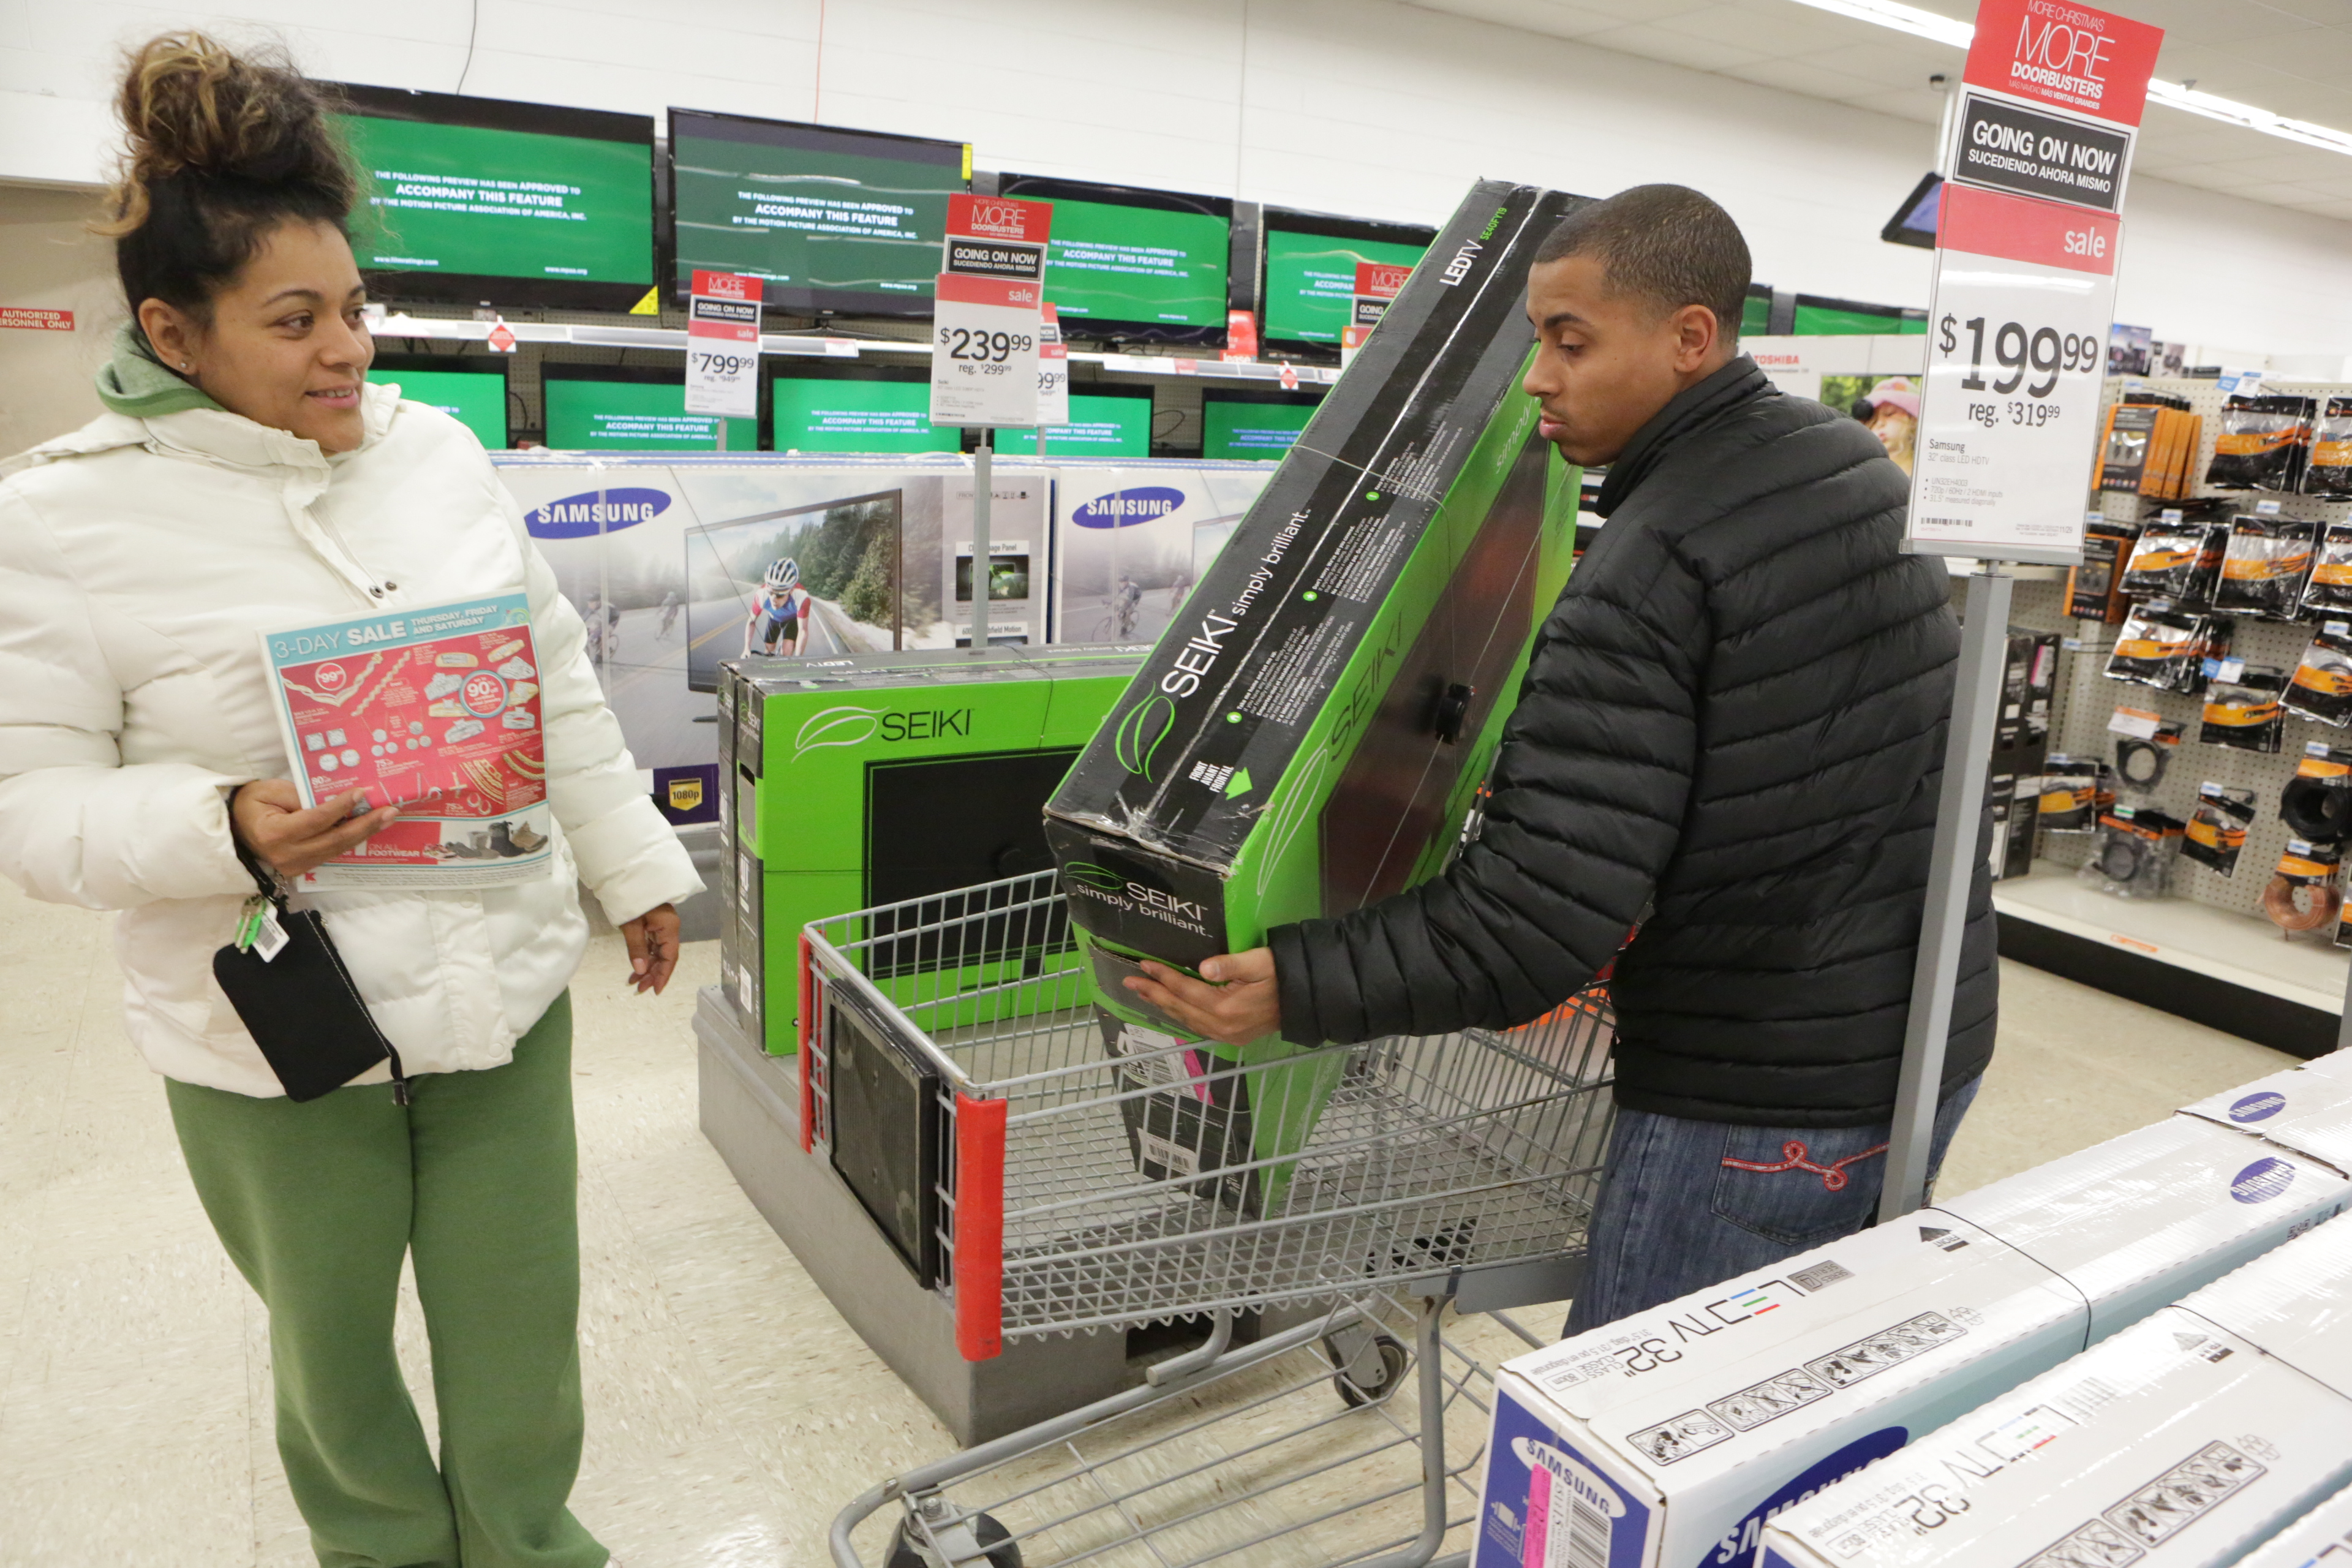 Shopping On Thanksgiving? Some Retailers Stay Open, Hoping To Capture Holiday Sales